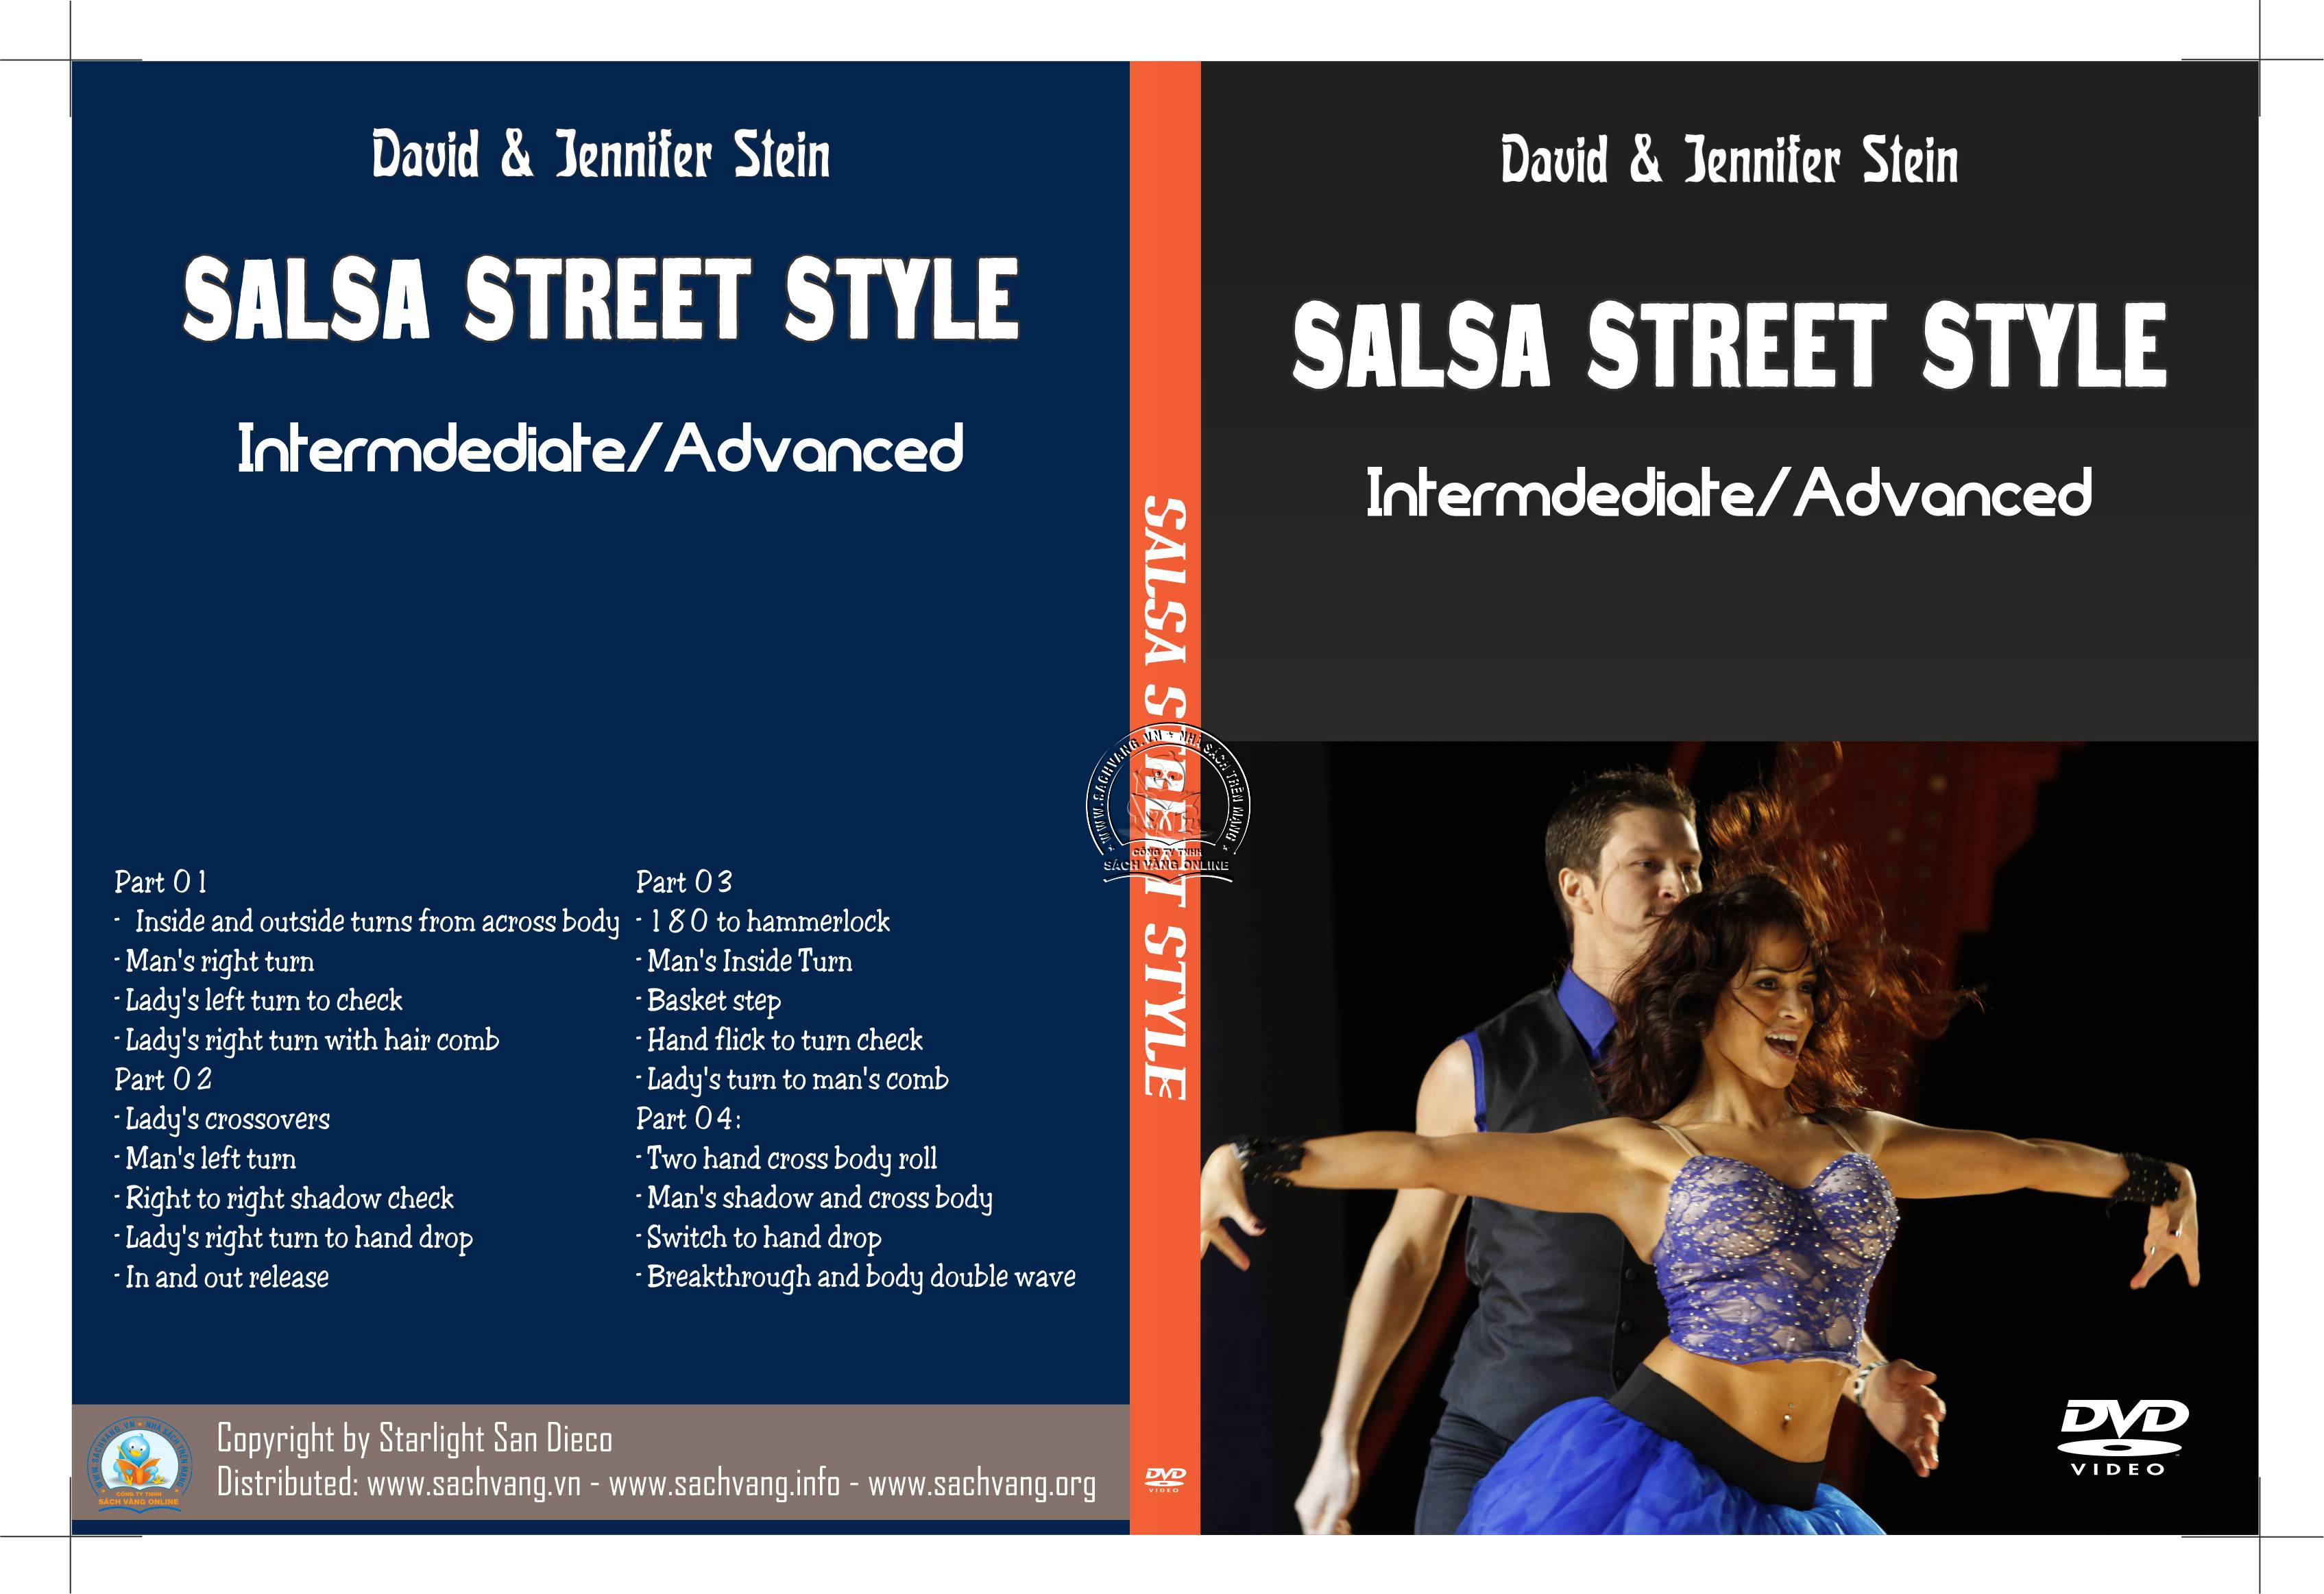 Salsa Street Style With David and Jennifer Stein cover